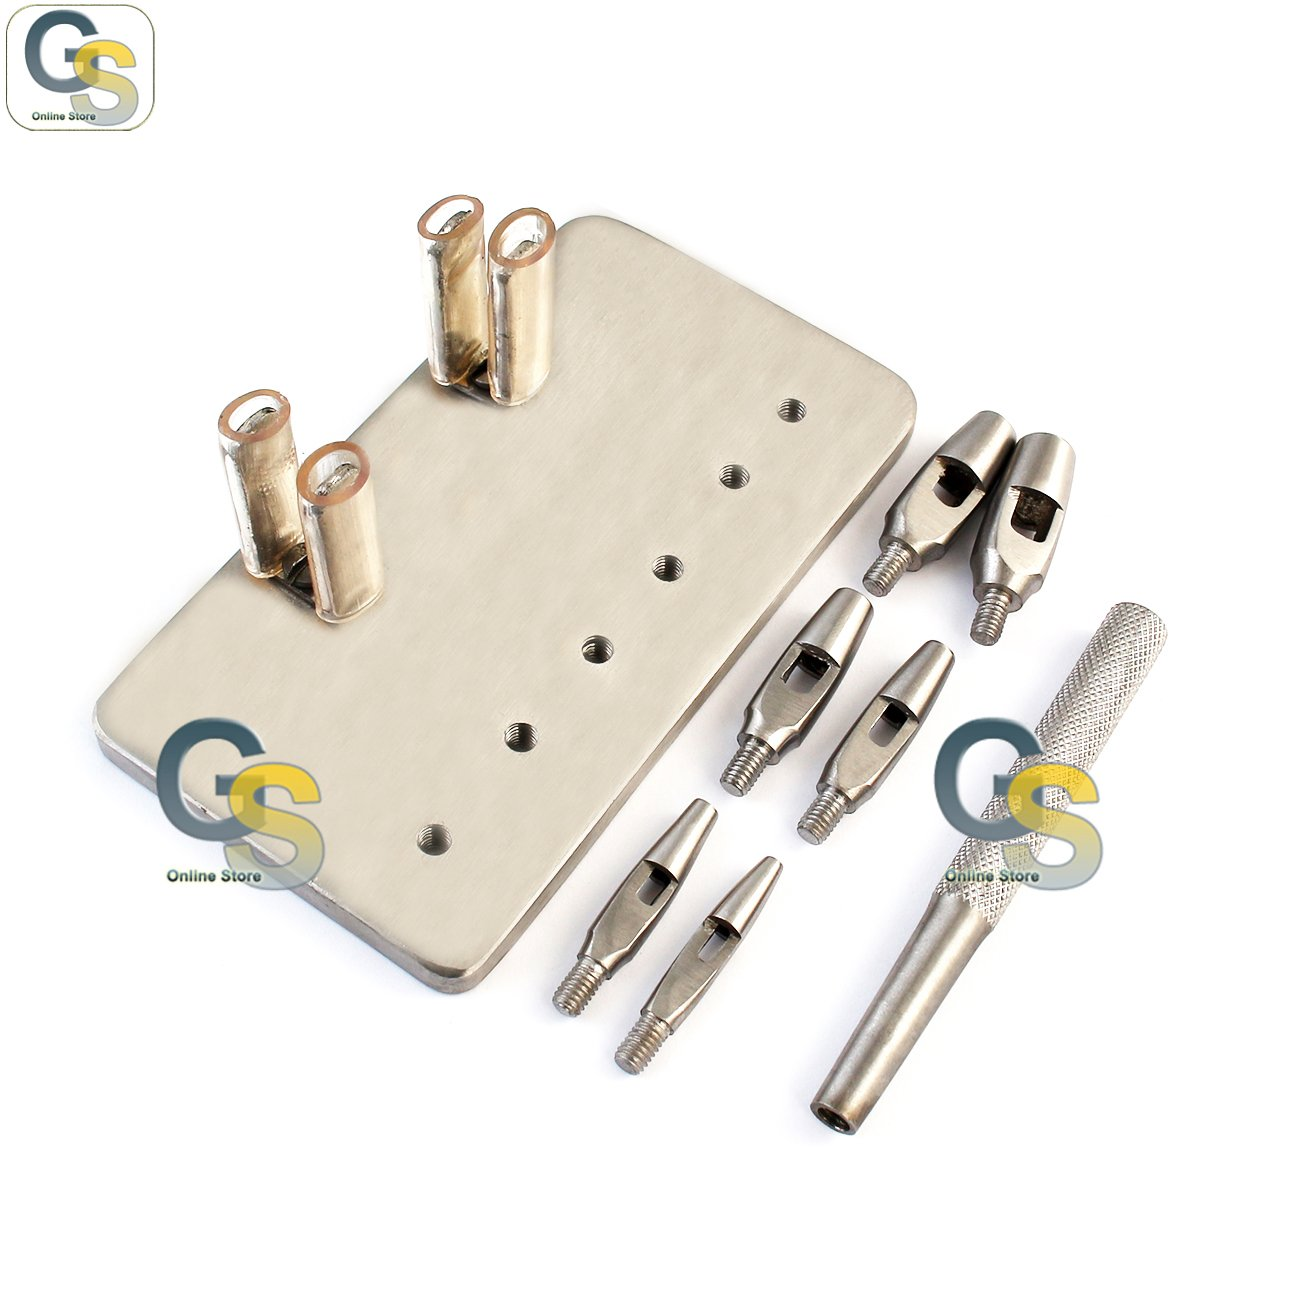 G.S SET 6 KEYES DERMAL PUNCHES 4''